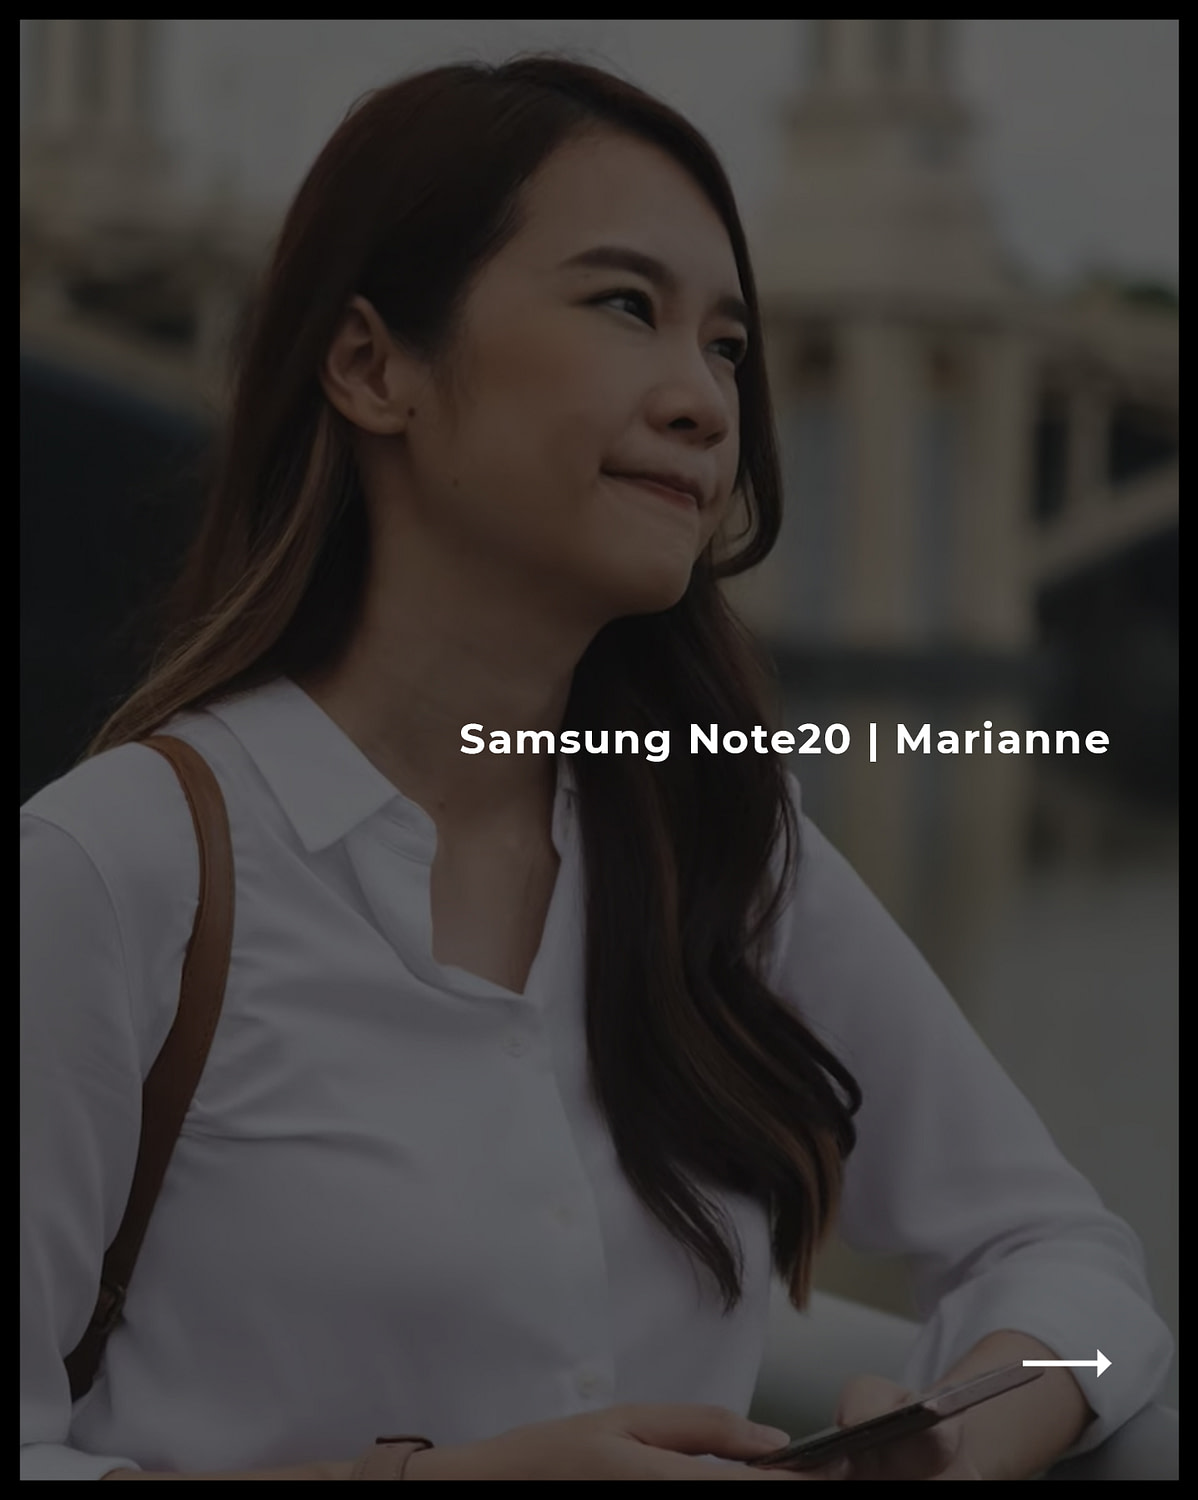 Samsung Note 20 - Marianne - Aspect Ratio